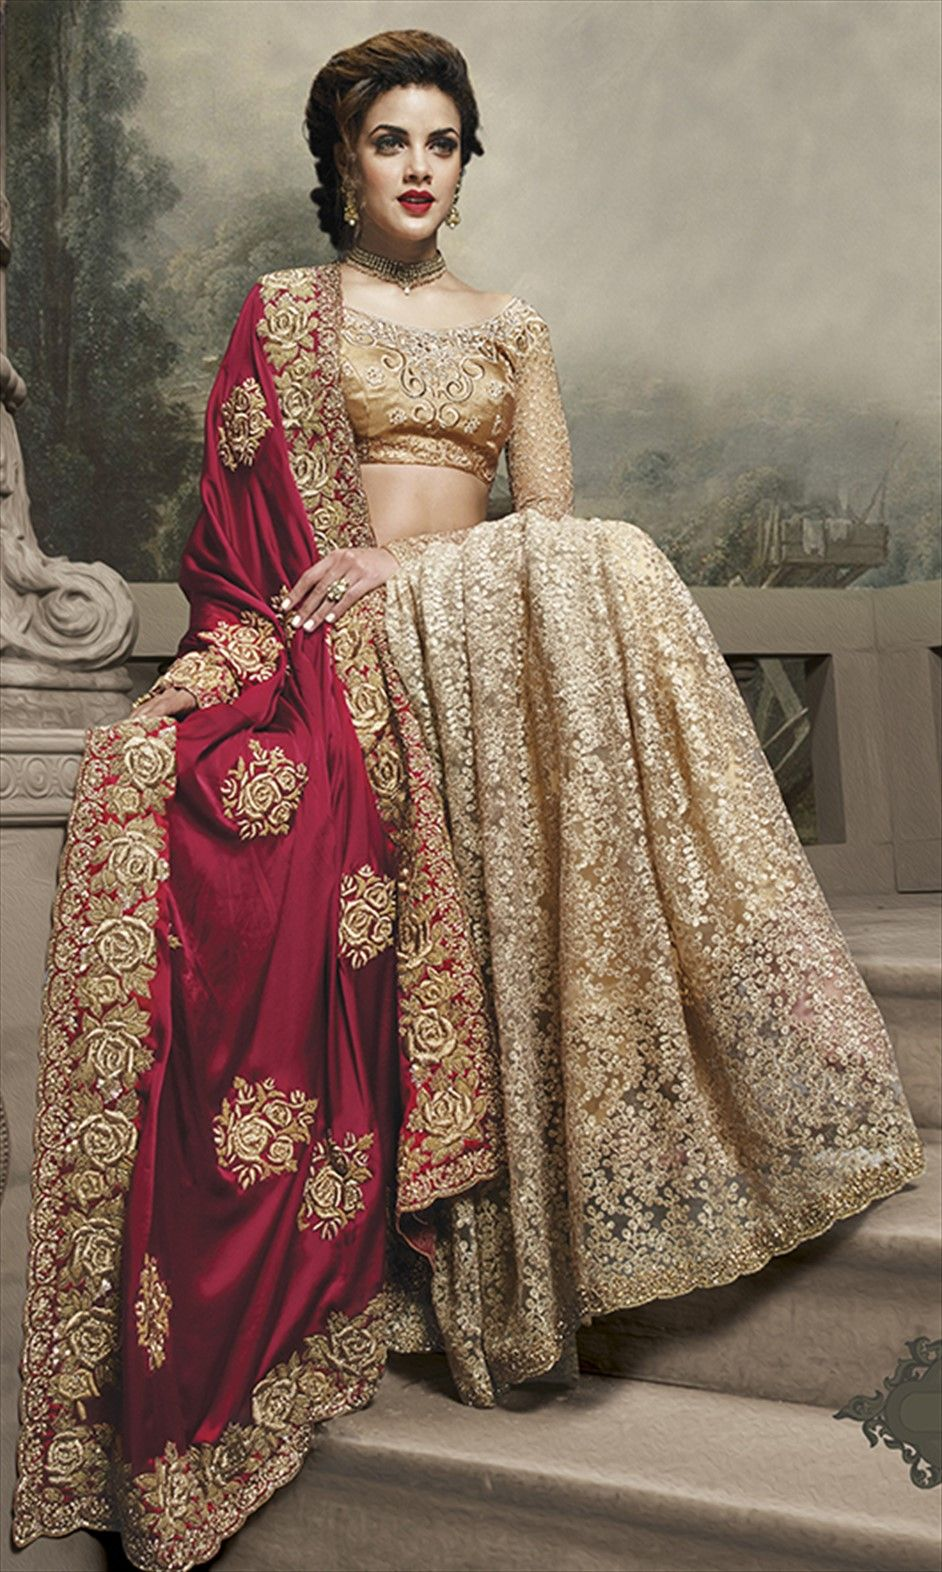 147373: Red and Maroon, Beige and Brown color family Saree with ...